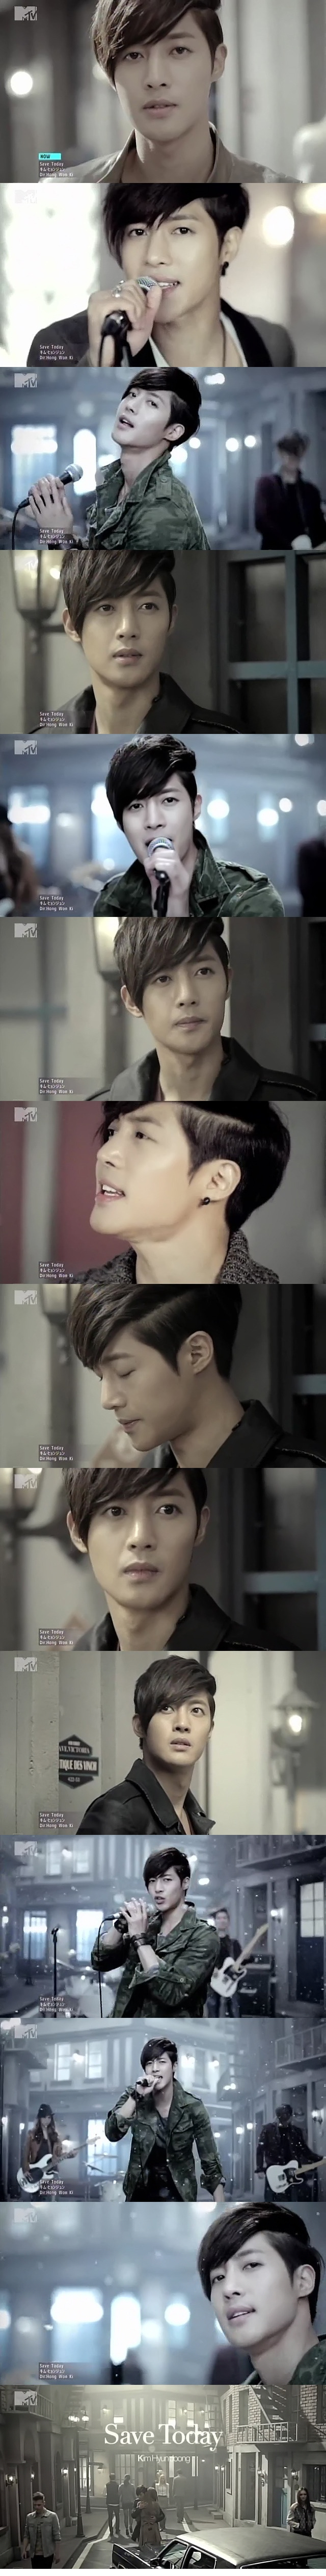 Kim Hyun Joong - Save Today (source: http://cozy-blog.tistory.com/1114 BTW, the entire MV is posted there too! And it not only looks, but also sounds amazing!! Check it out and buy an official CD!) I am so glad I ordered version B now! It comes with the making of this MW ^_^ : http://www.cdjapan.co.jp/detailview.html?KEY=UICV-9027